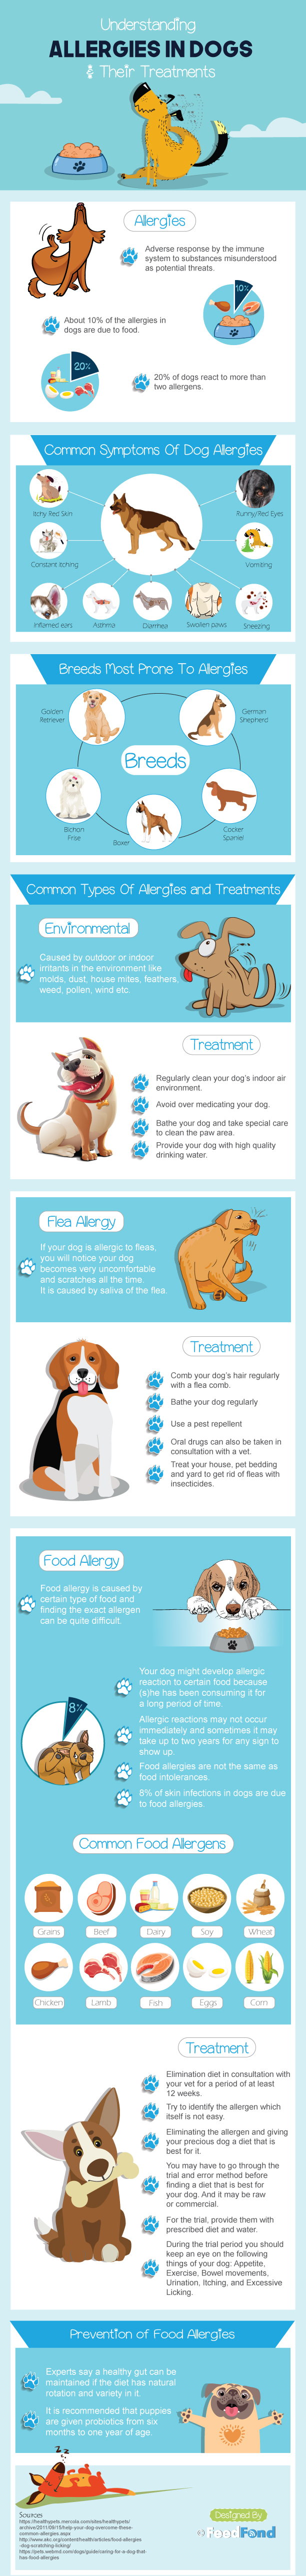 All You Need To Know About Allergies In Dogs [Infographic]